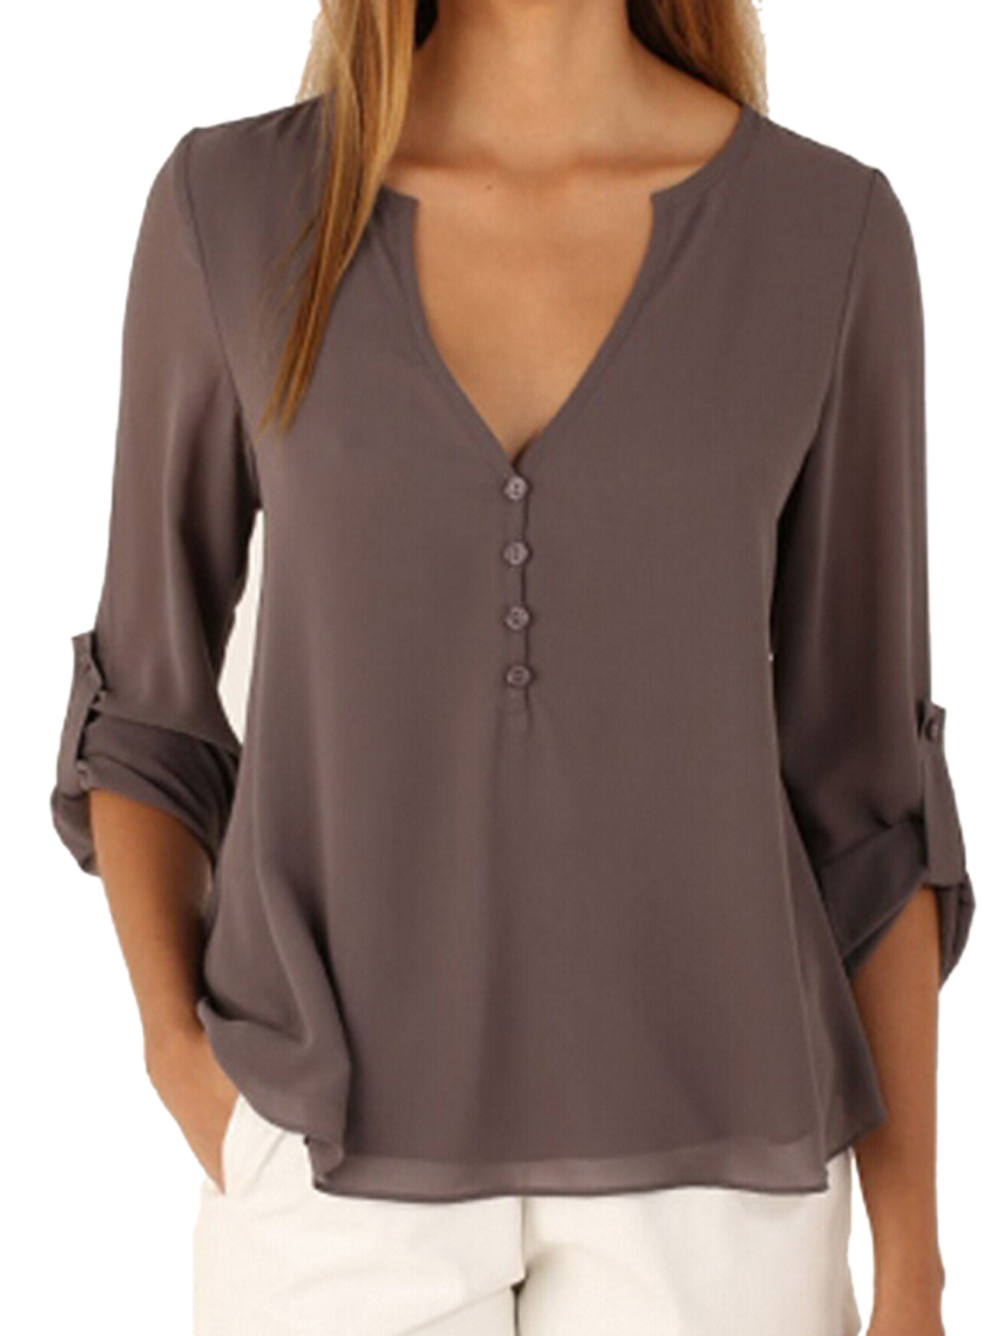 Sheer V Neck Top Button High Low Shirt Blouse Loose Sheer